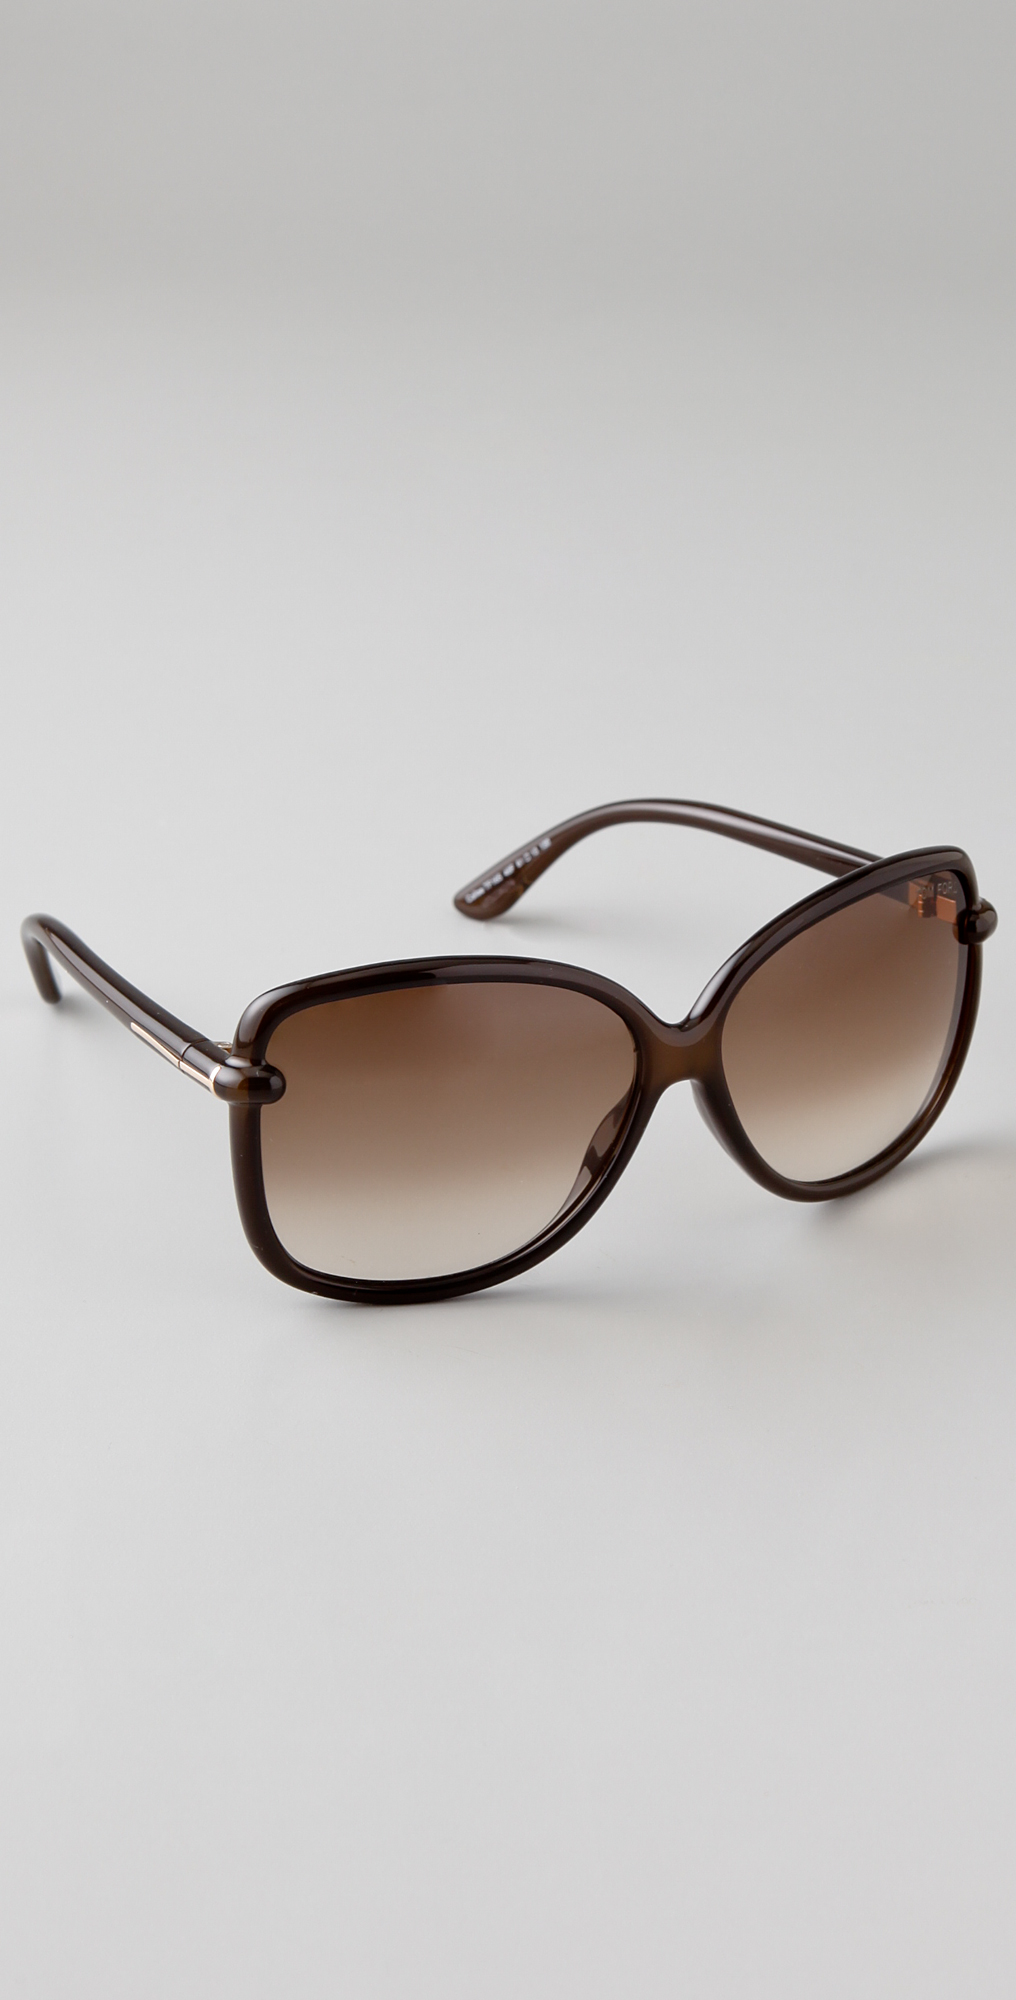 53157ae462c Tom Ford Eyewear Callae Sunglasses